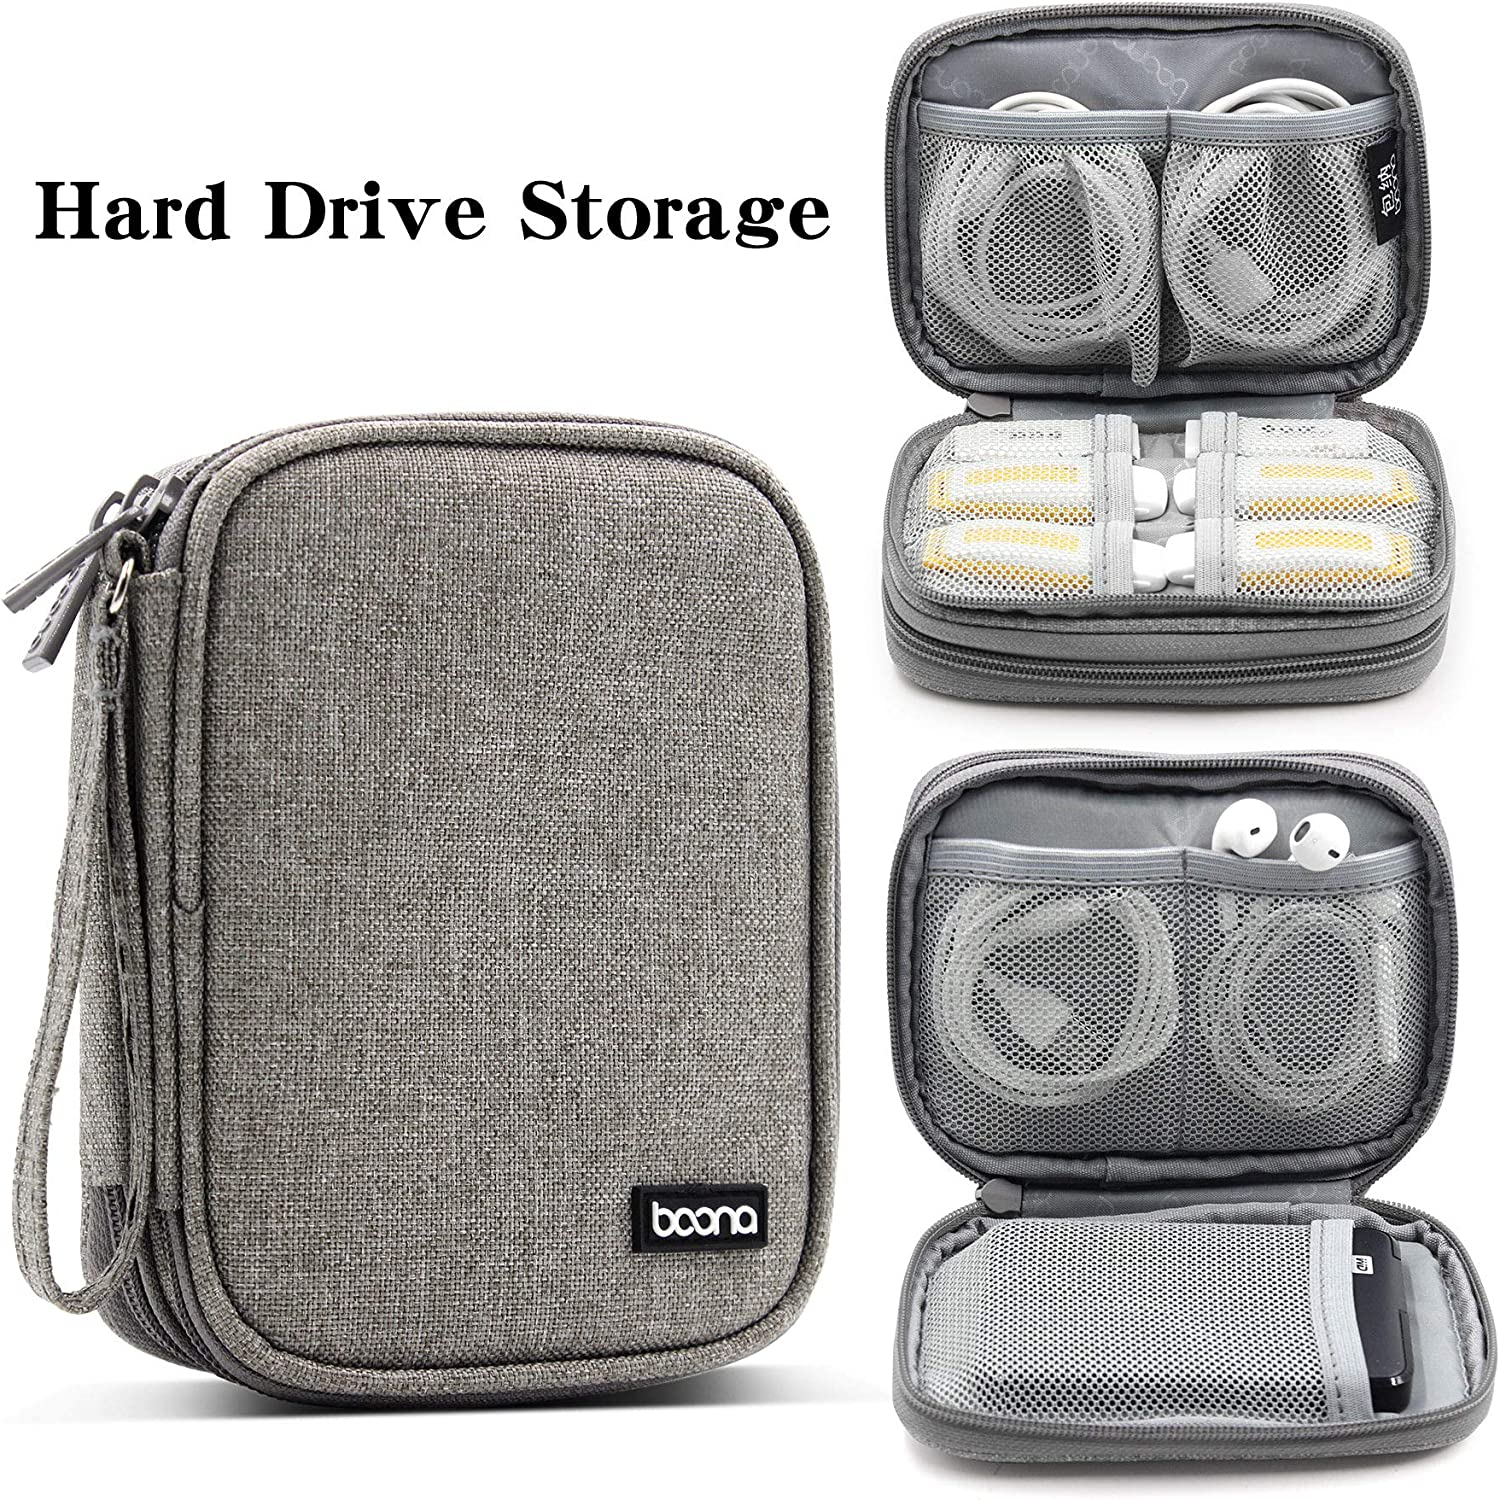 Grey, 6.9 x 4.1 x 1.7 Shockproof Hard Drive Carrying Case for WD My Passport BOONA Hard EVA Travel Case